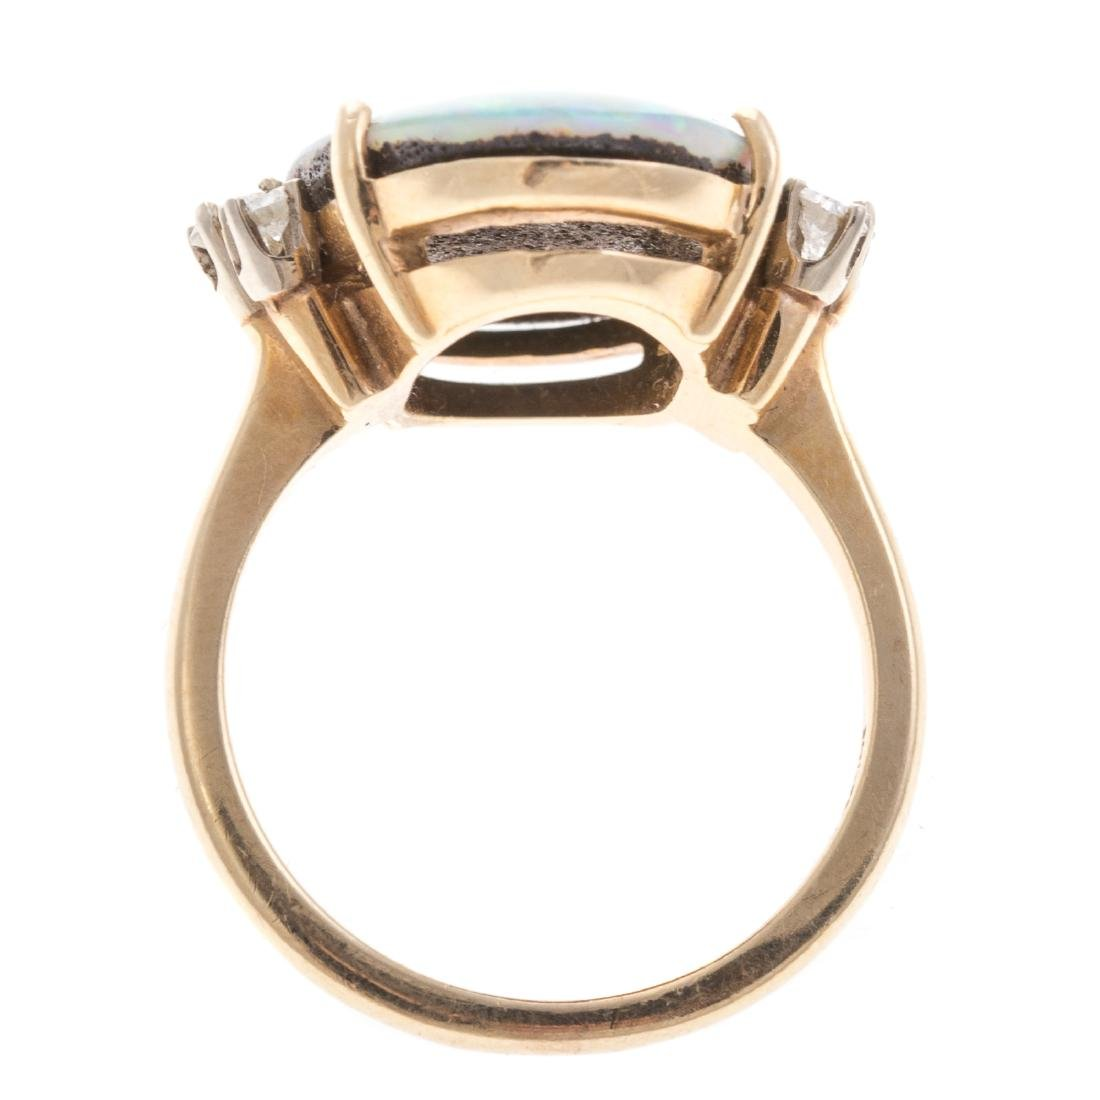 A Lady's 14K Opal and Diamond Ring - 5